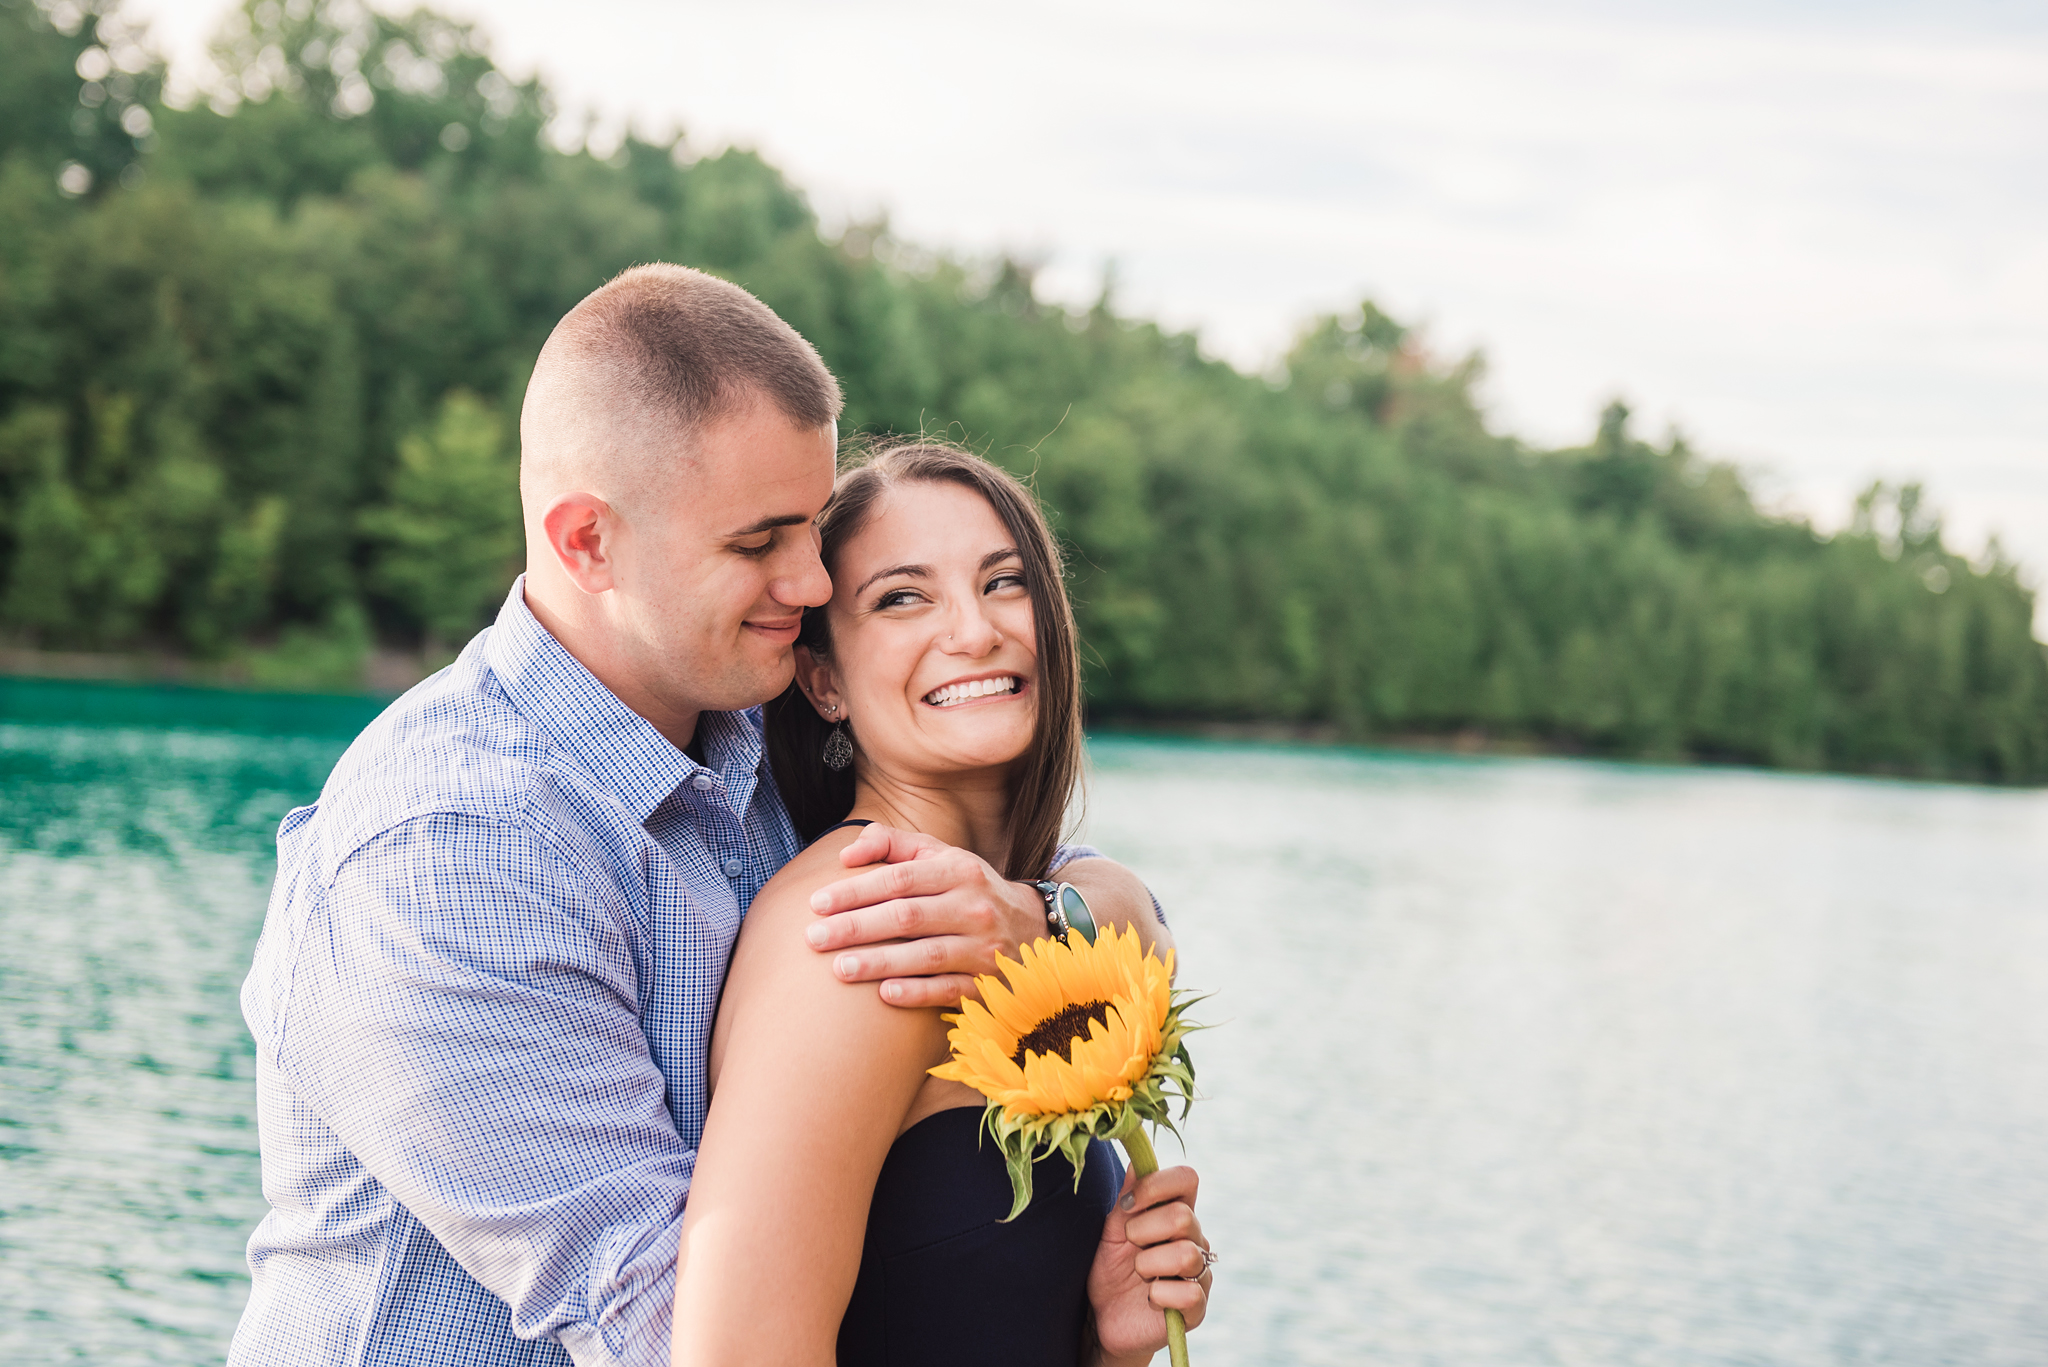 Green_Lakes_State_Park_Syracuse_Engagement_Session_JILL_STUDIO_Rochester_NY_Photographer_DSC_1072.jpg